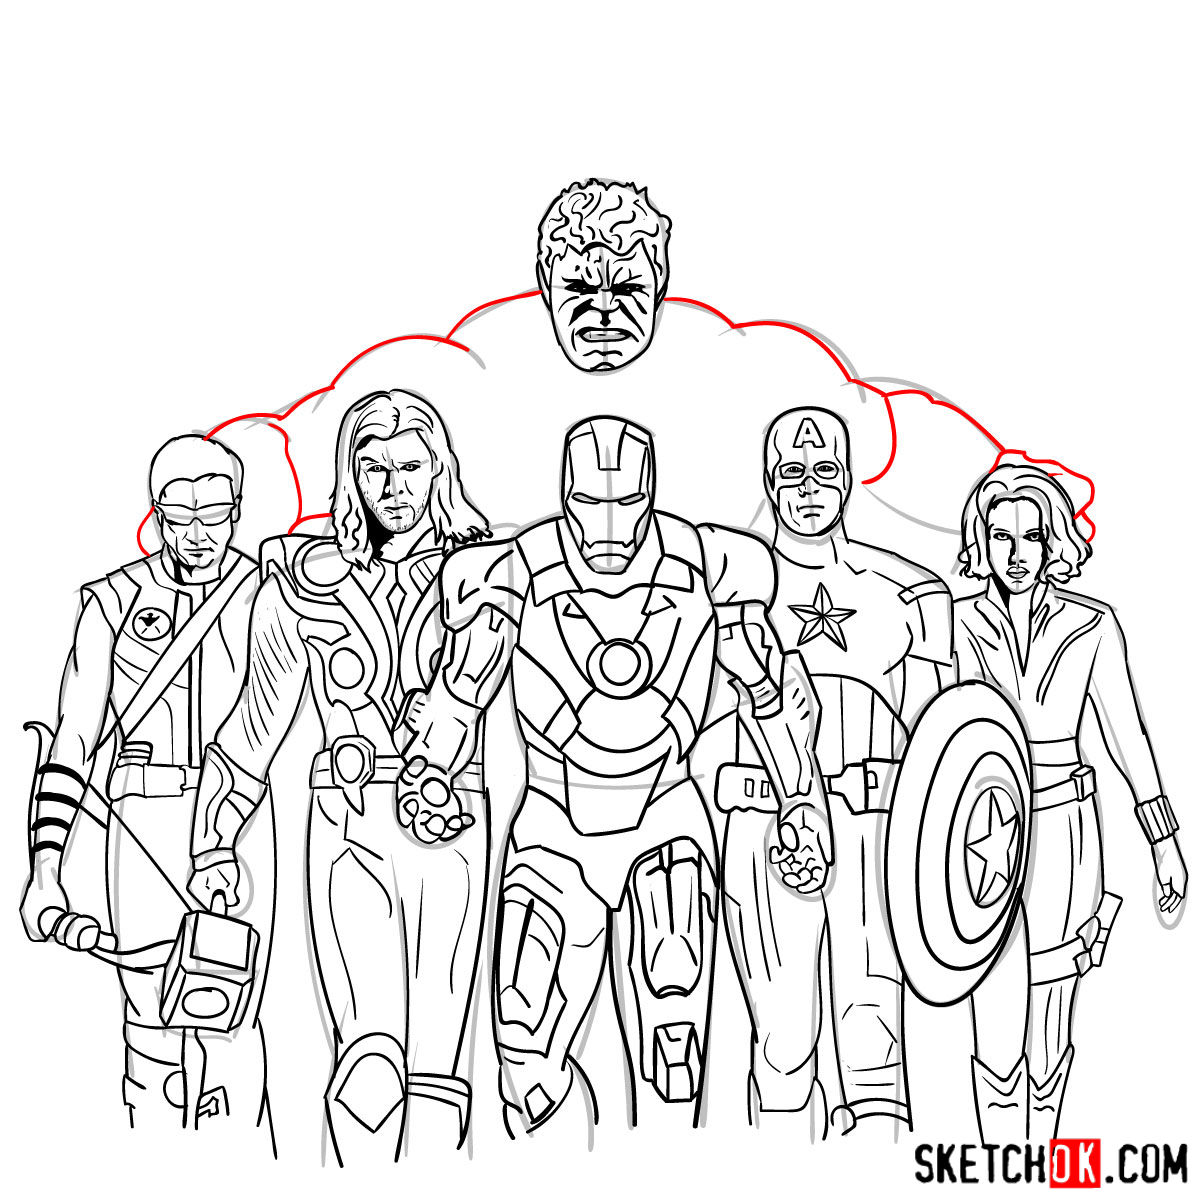 How to draw the Avengers Team - Sketchok